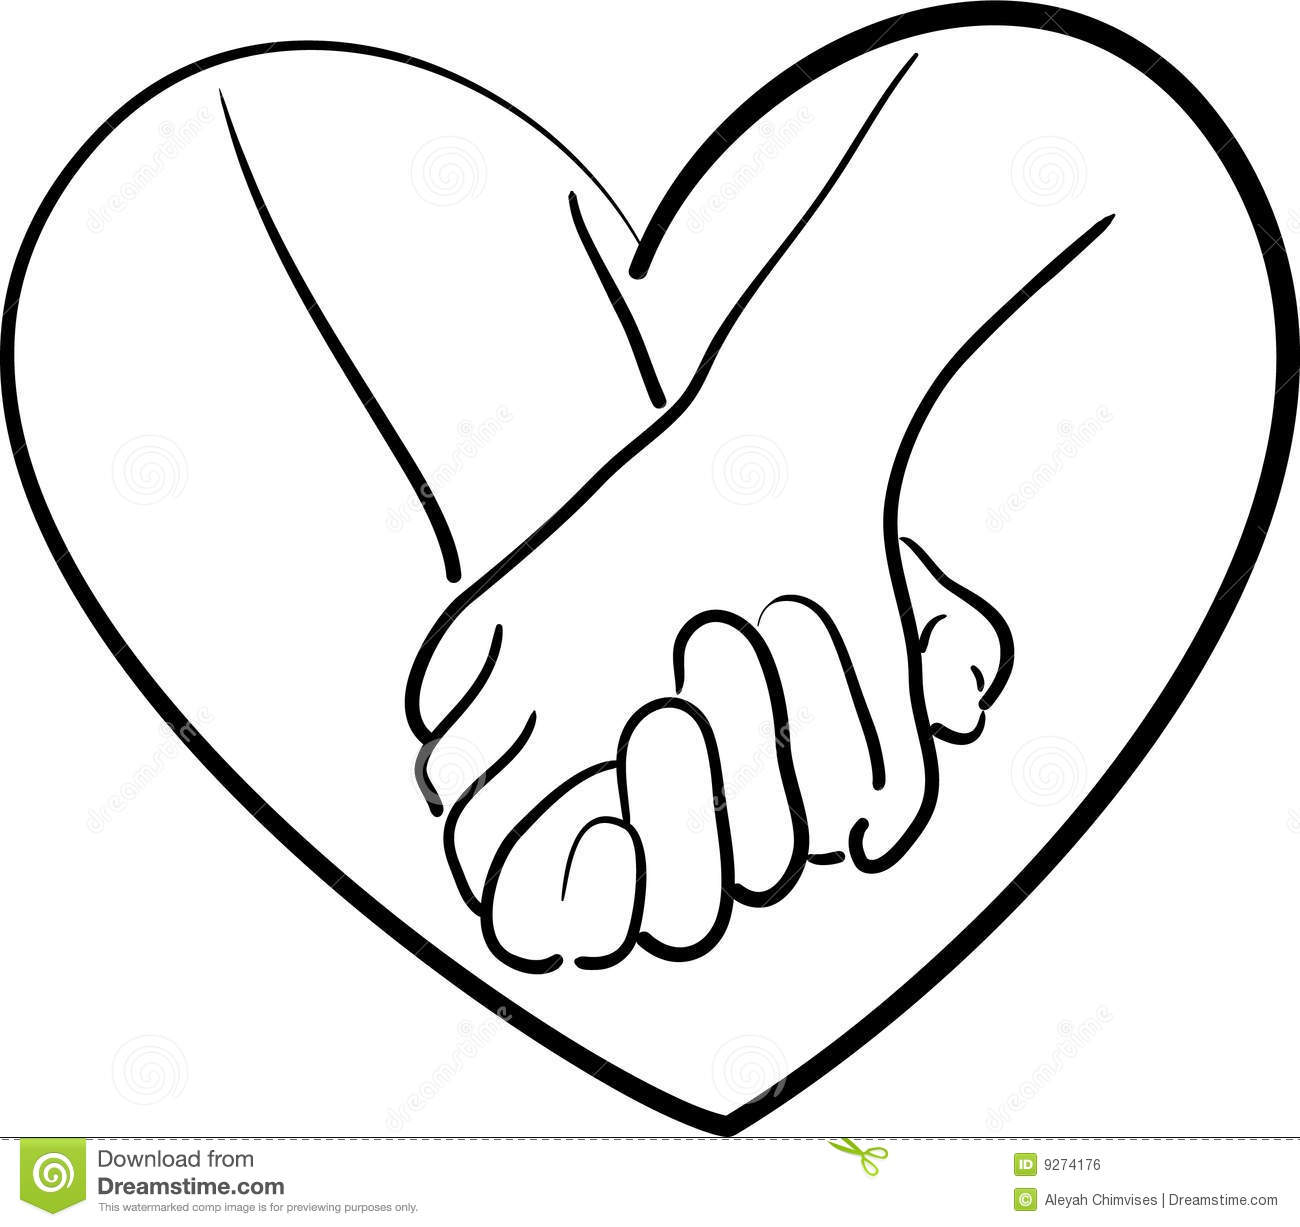 Holding Hands Royalty Free Stock Image I-Holding Hands Royalty Free Stock Image Image 9274176-12